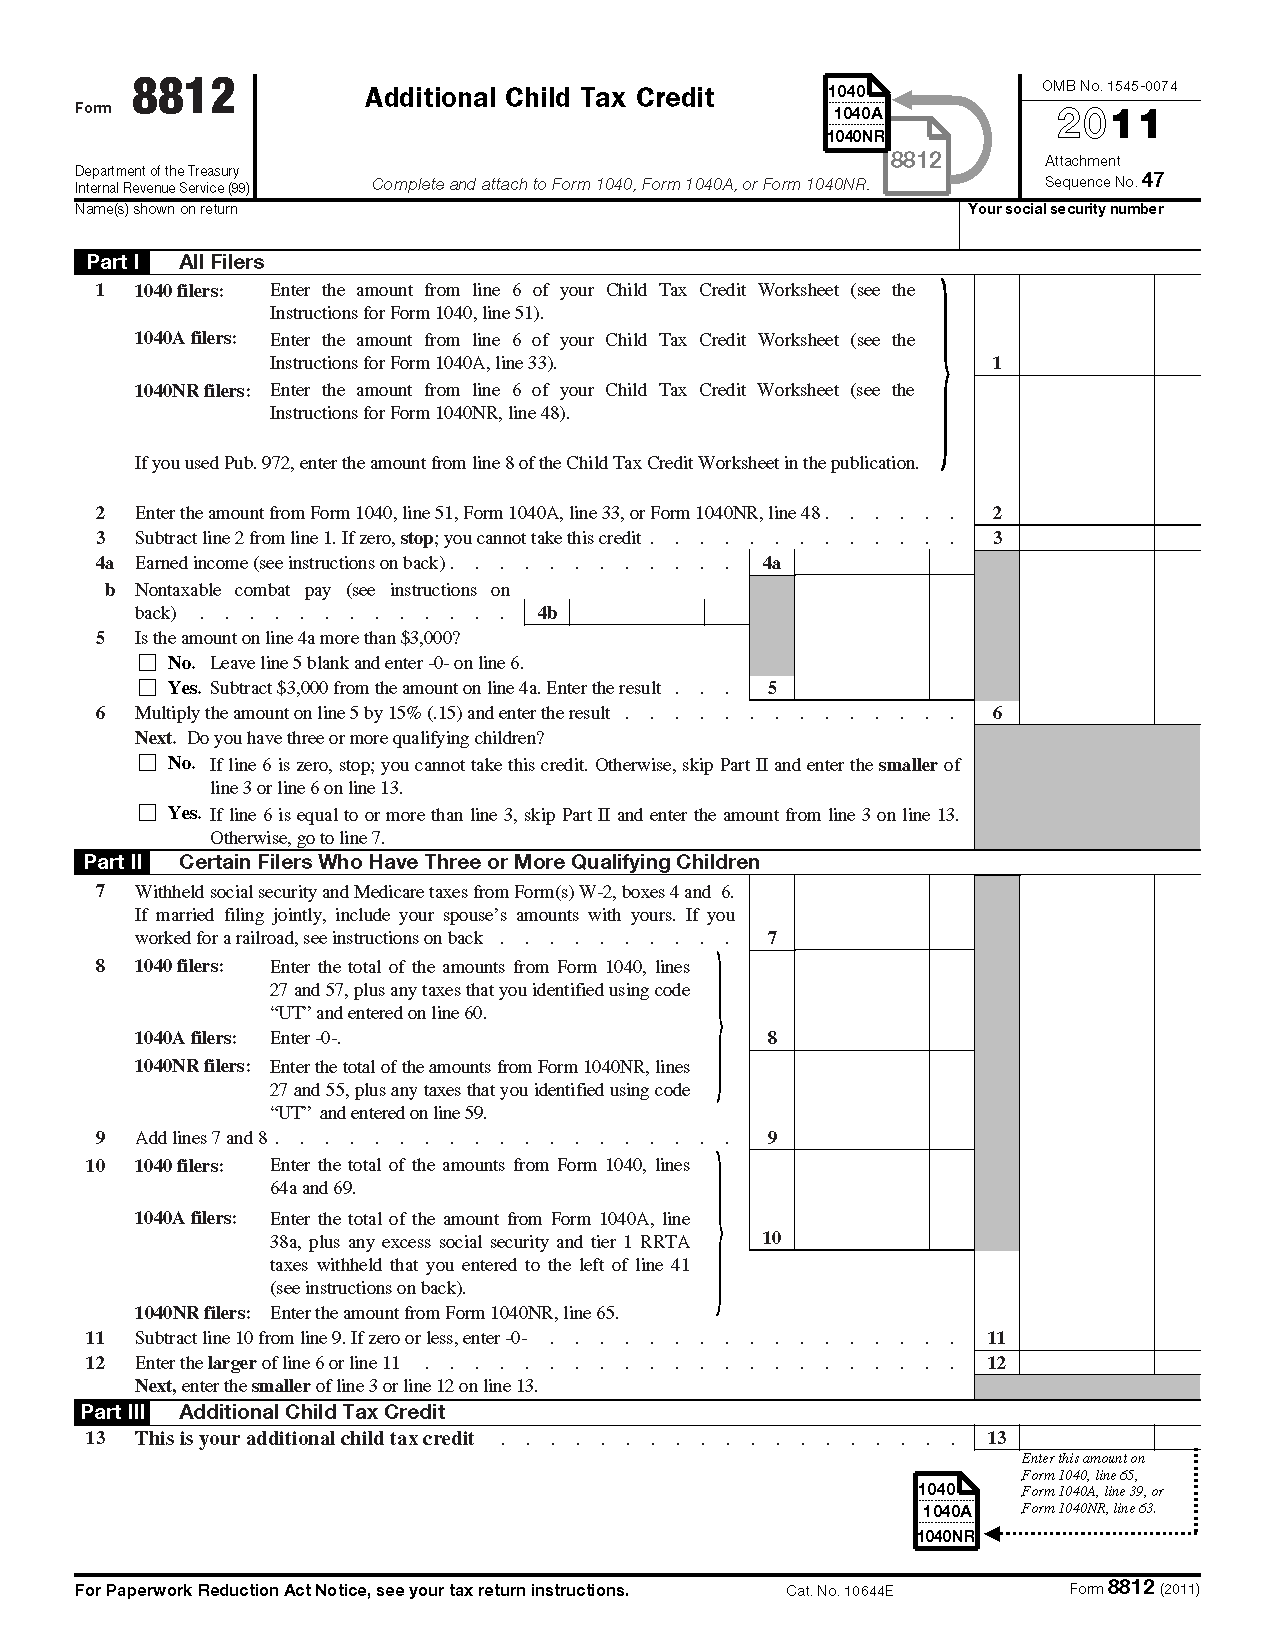 child tax credit worksheet worksheets releaseboard free printable worksheets and activities. Black Bedroom Furniture Sets. Home Design Ideas